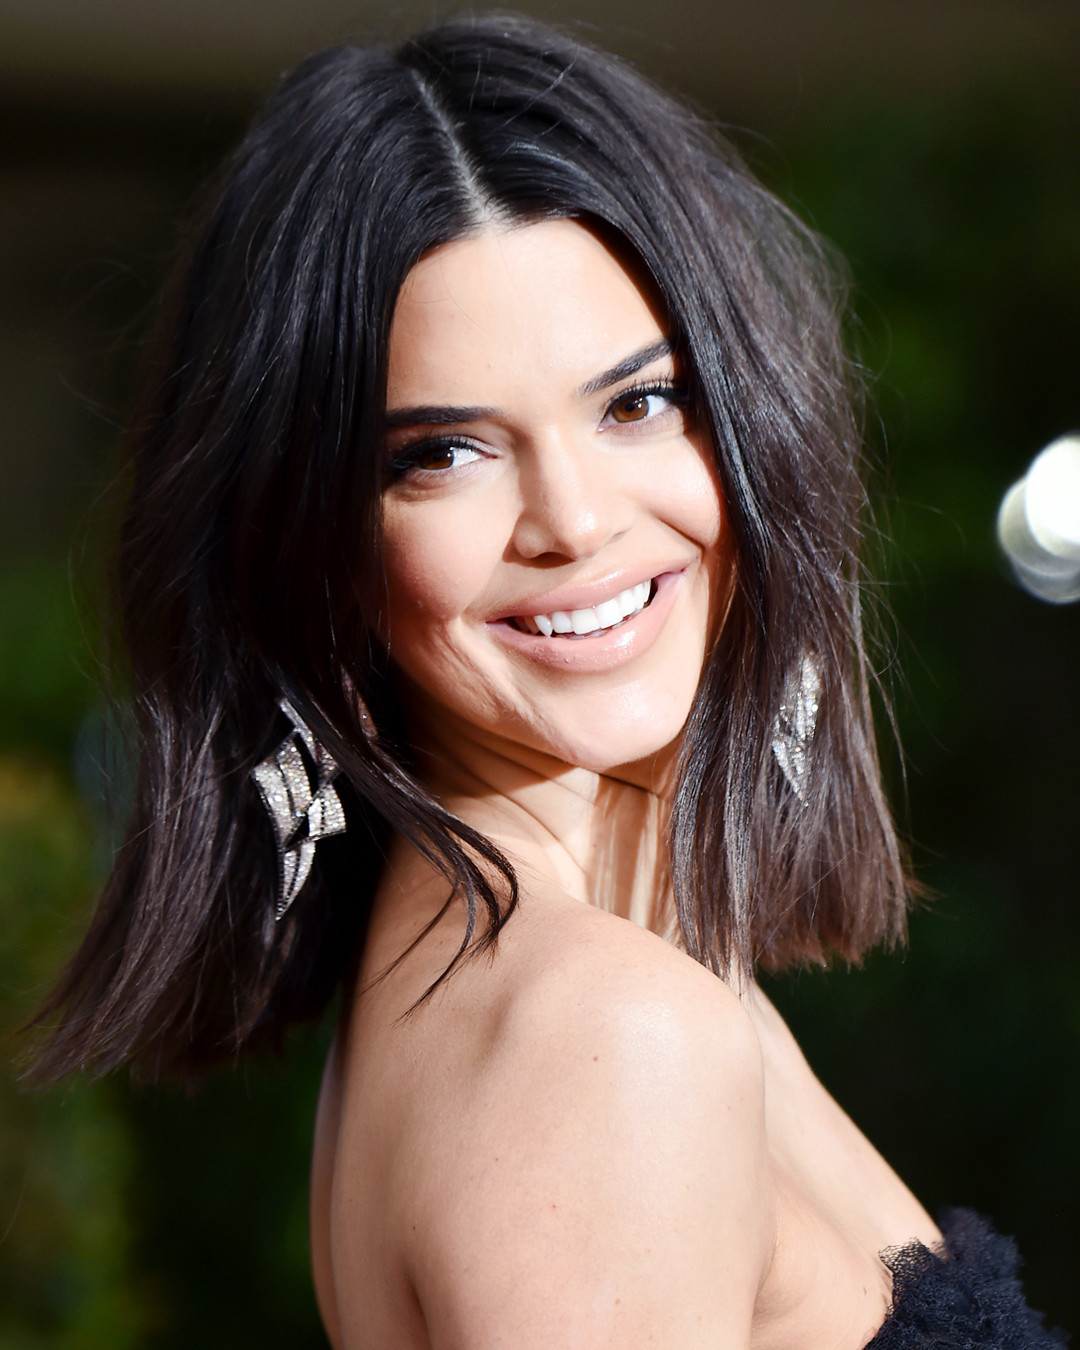 Inside The Life Of The Kardashians' Dentist: 10K Veneers, Wine Spray And More